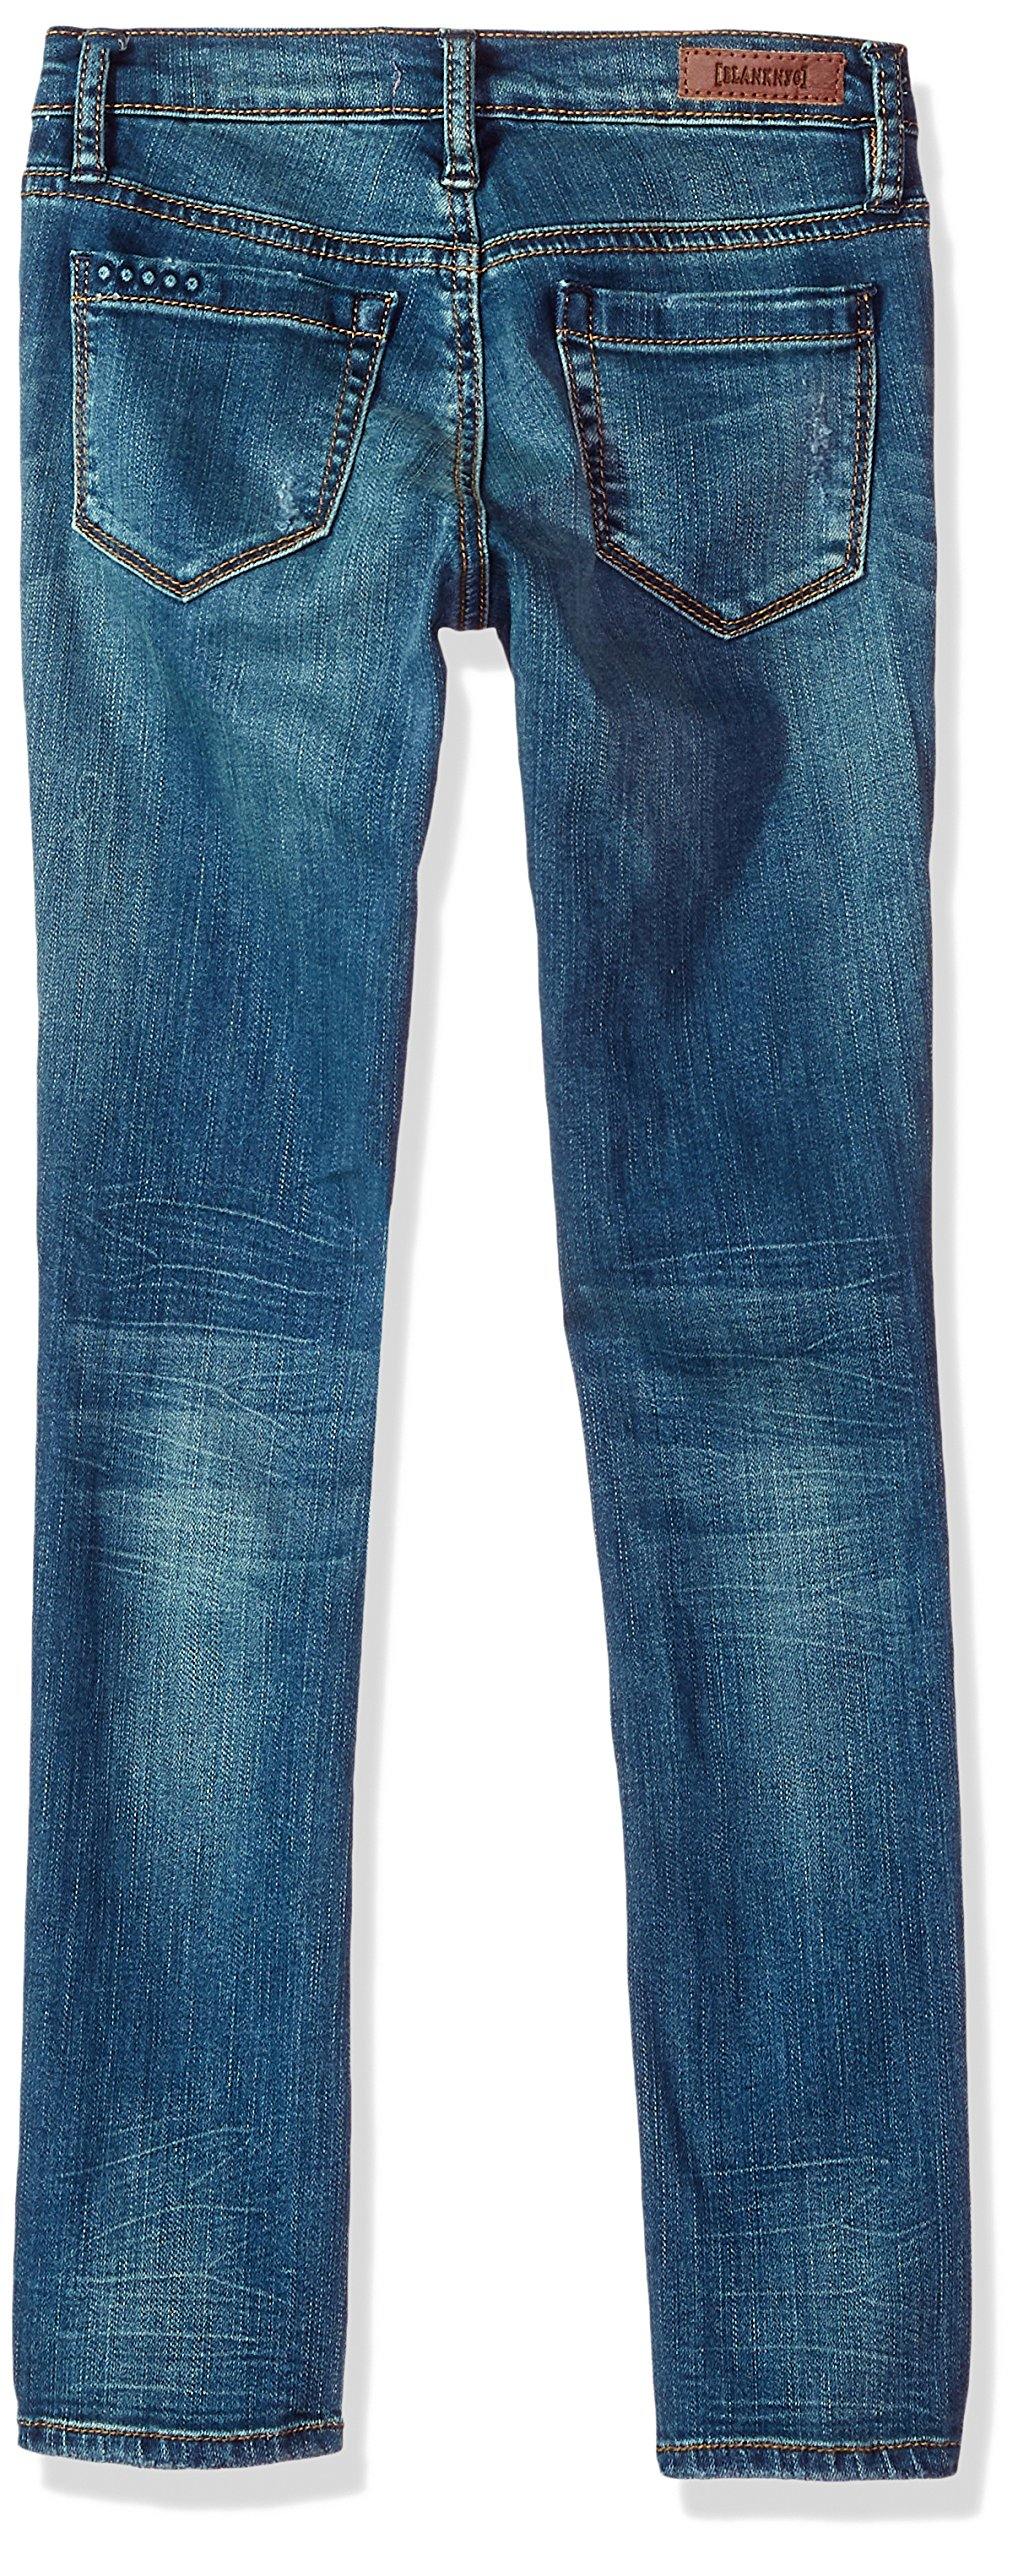 [BLANKNYC] Big Girl's Distressed Super Skinny Pants, no time for DAT, 12 by [BLANKNYC] (Image #2)